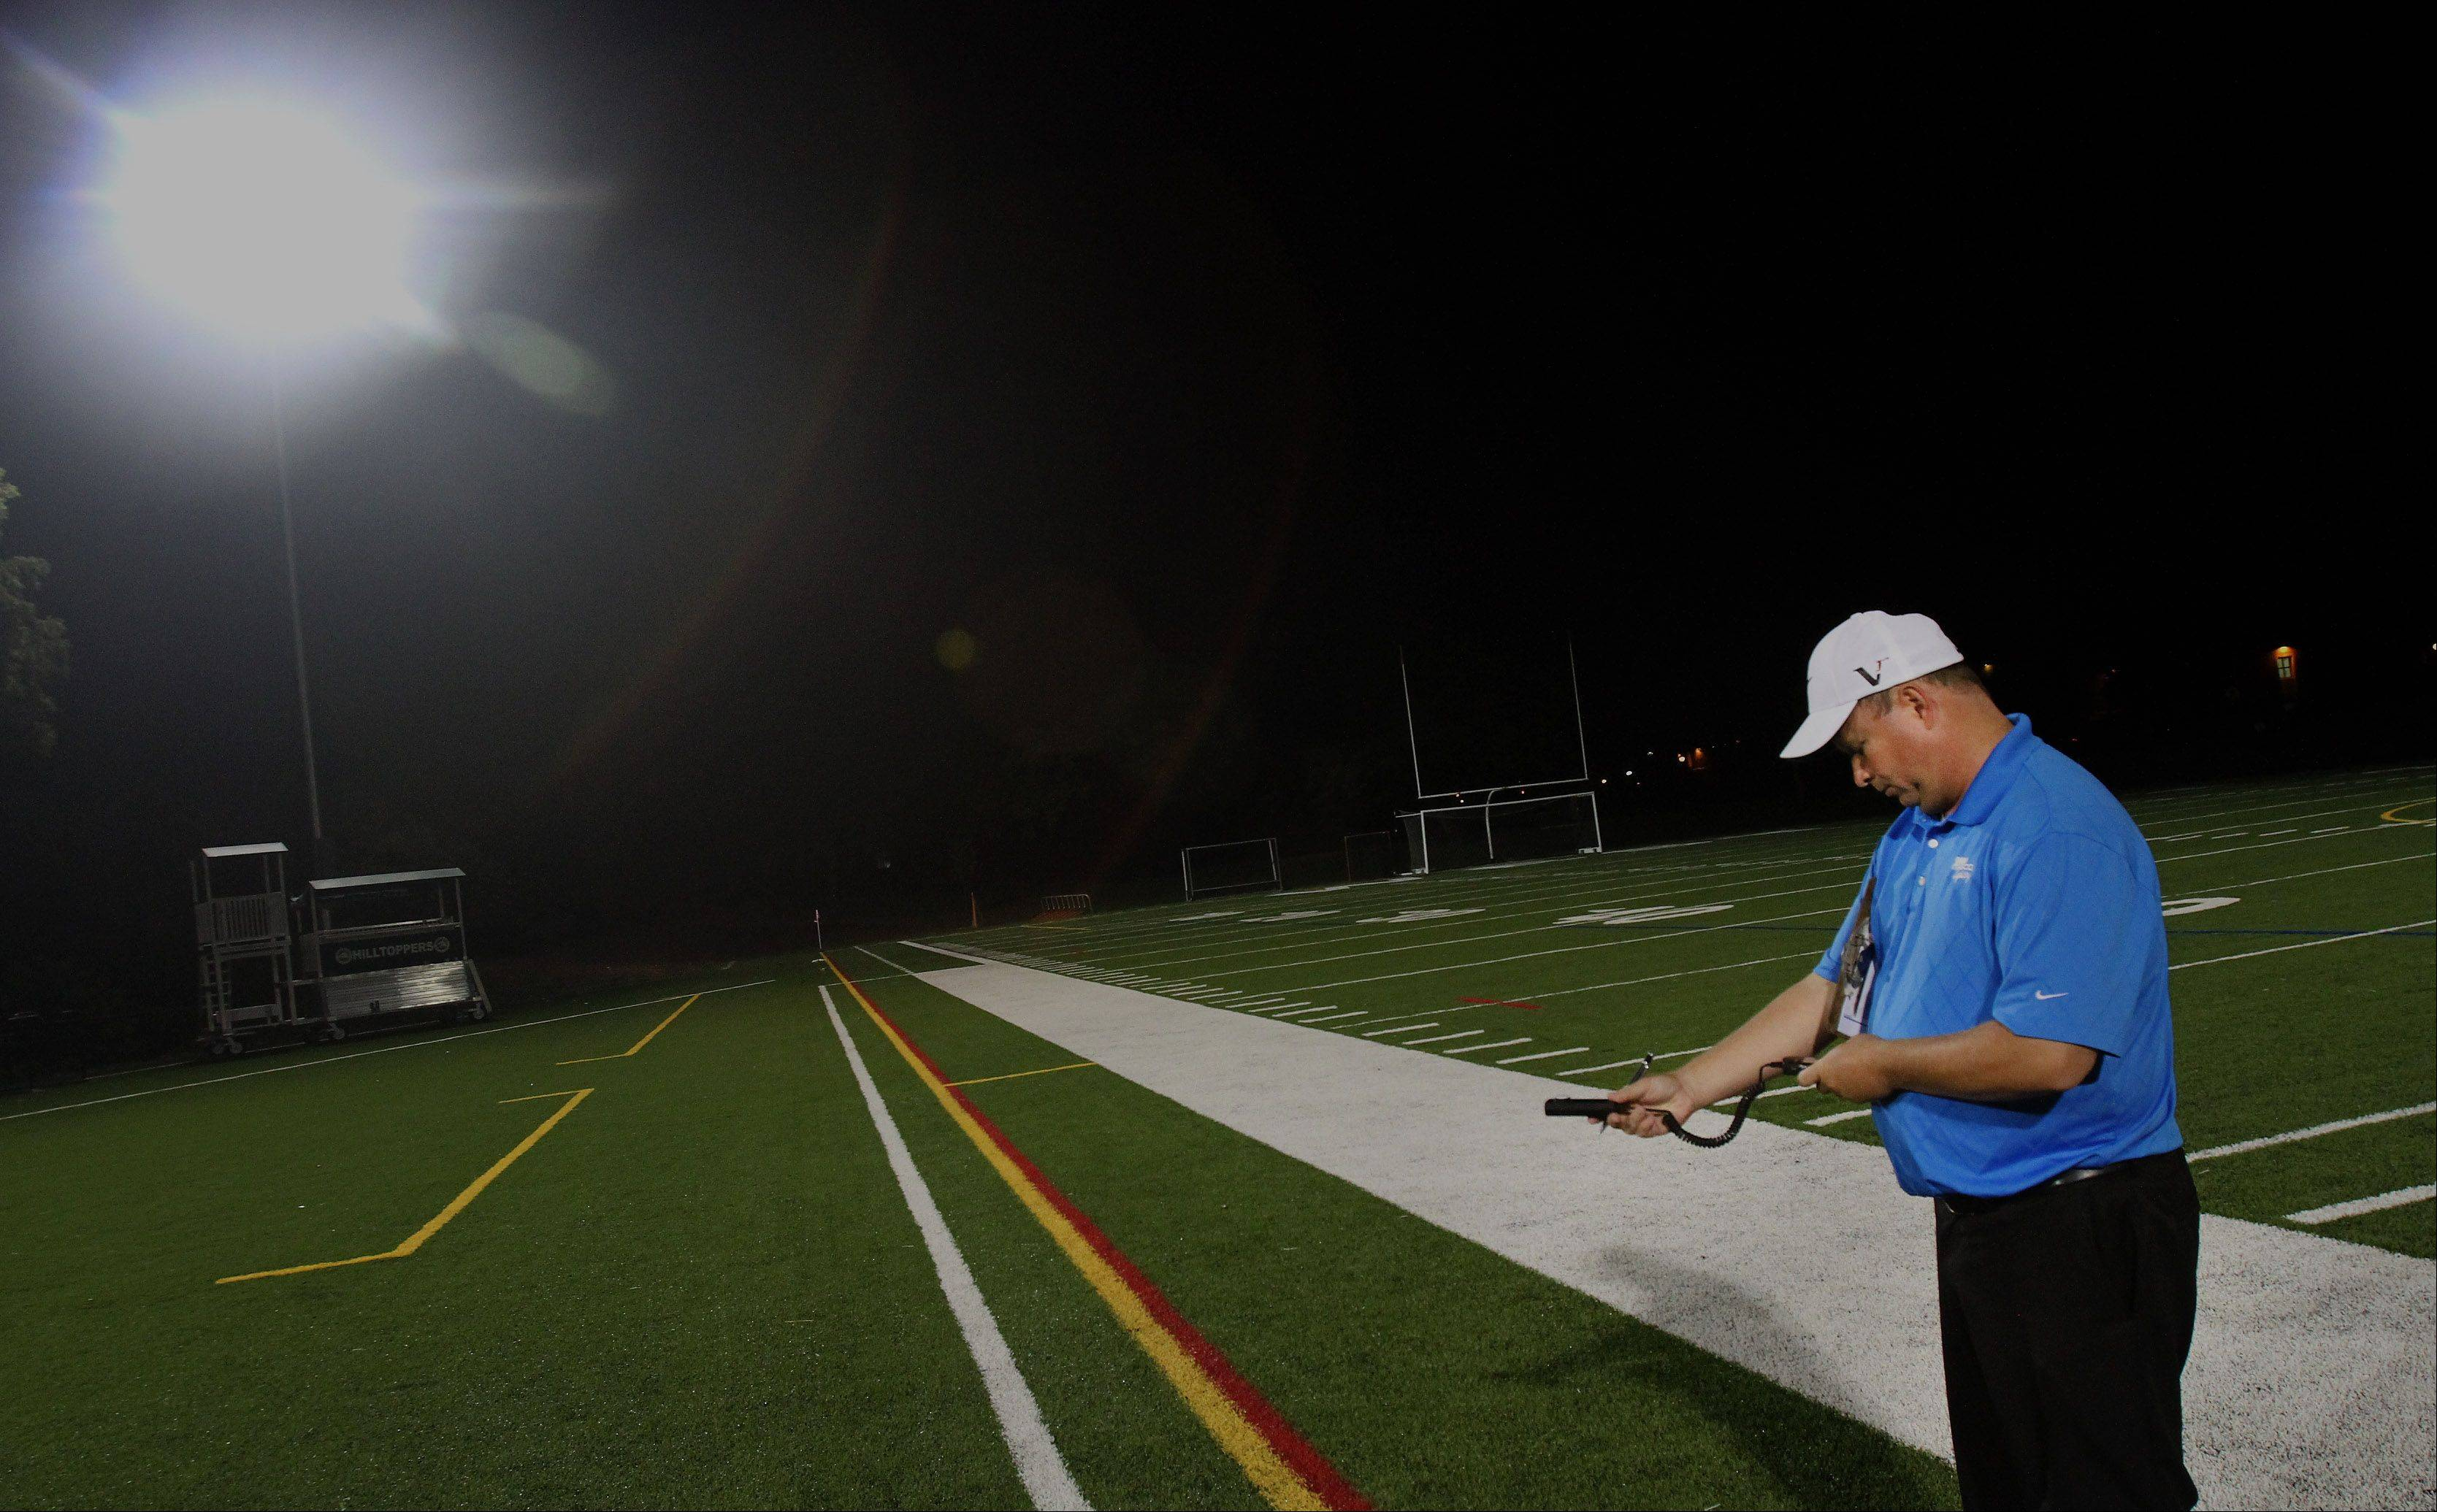 David Miller of Musco Lighting takes a reading during a test of the new lights Monday at Memorial Field in Glen Ellyn.